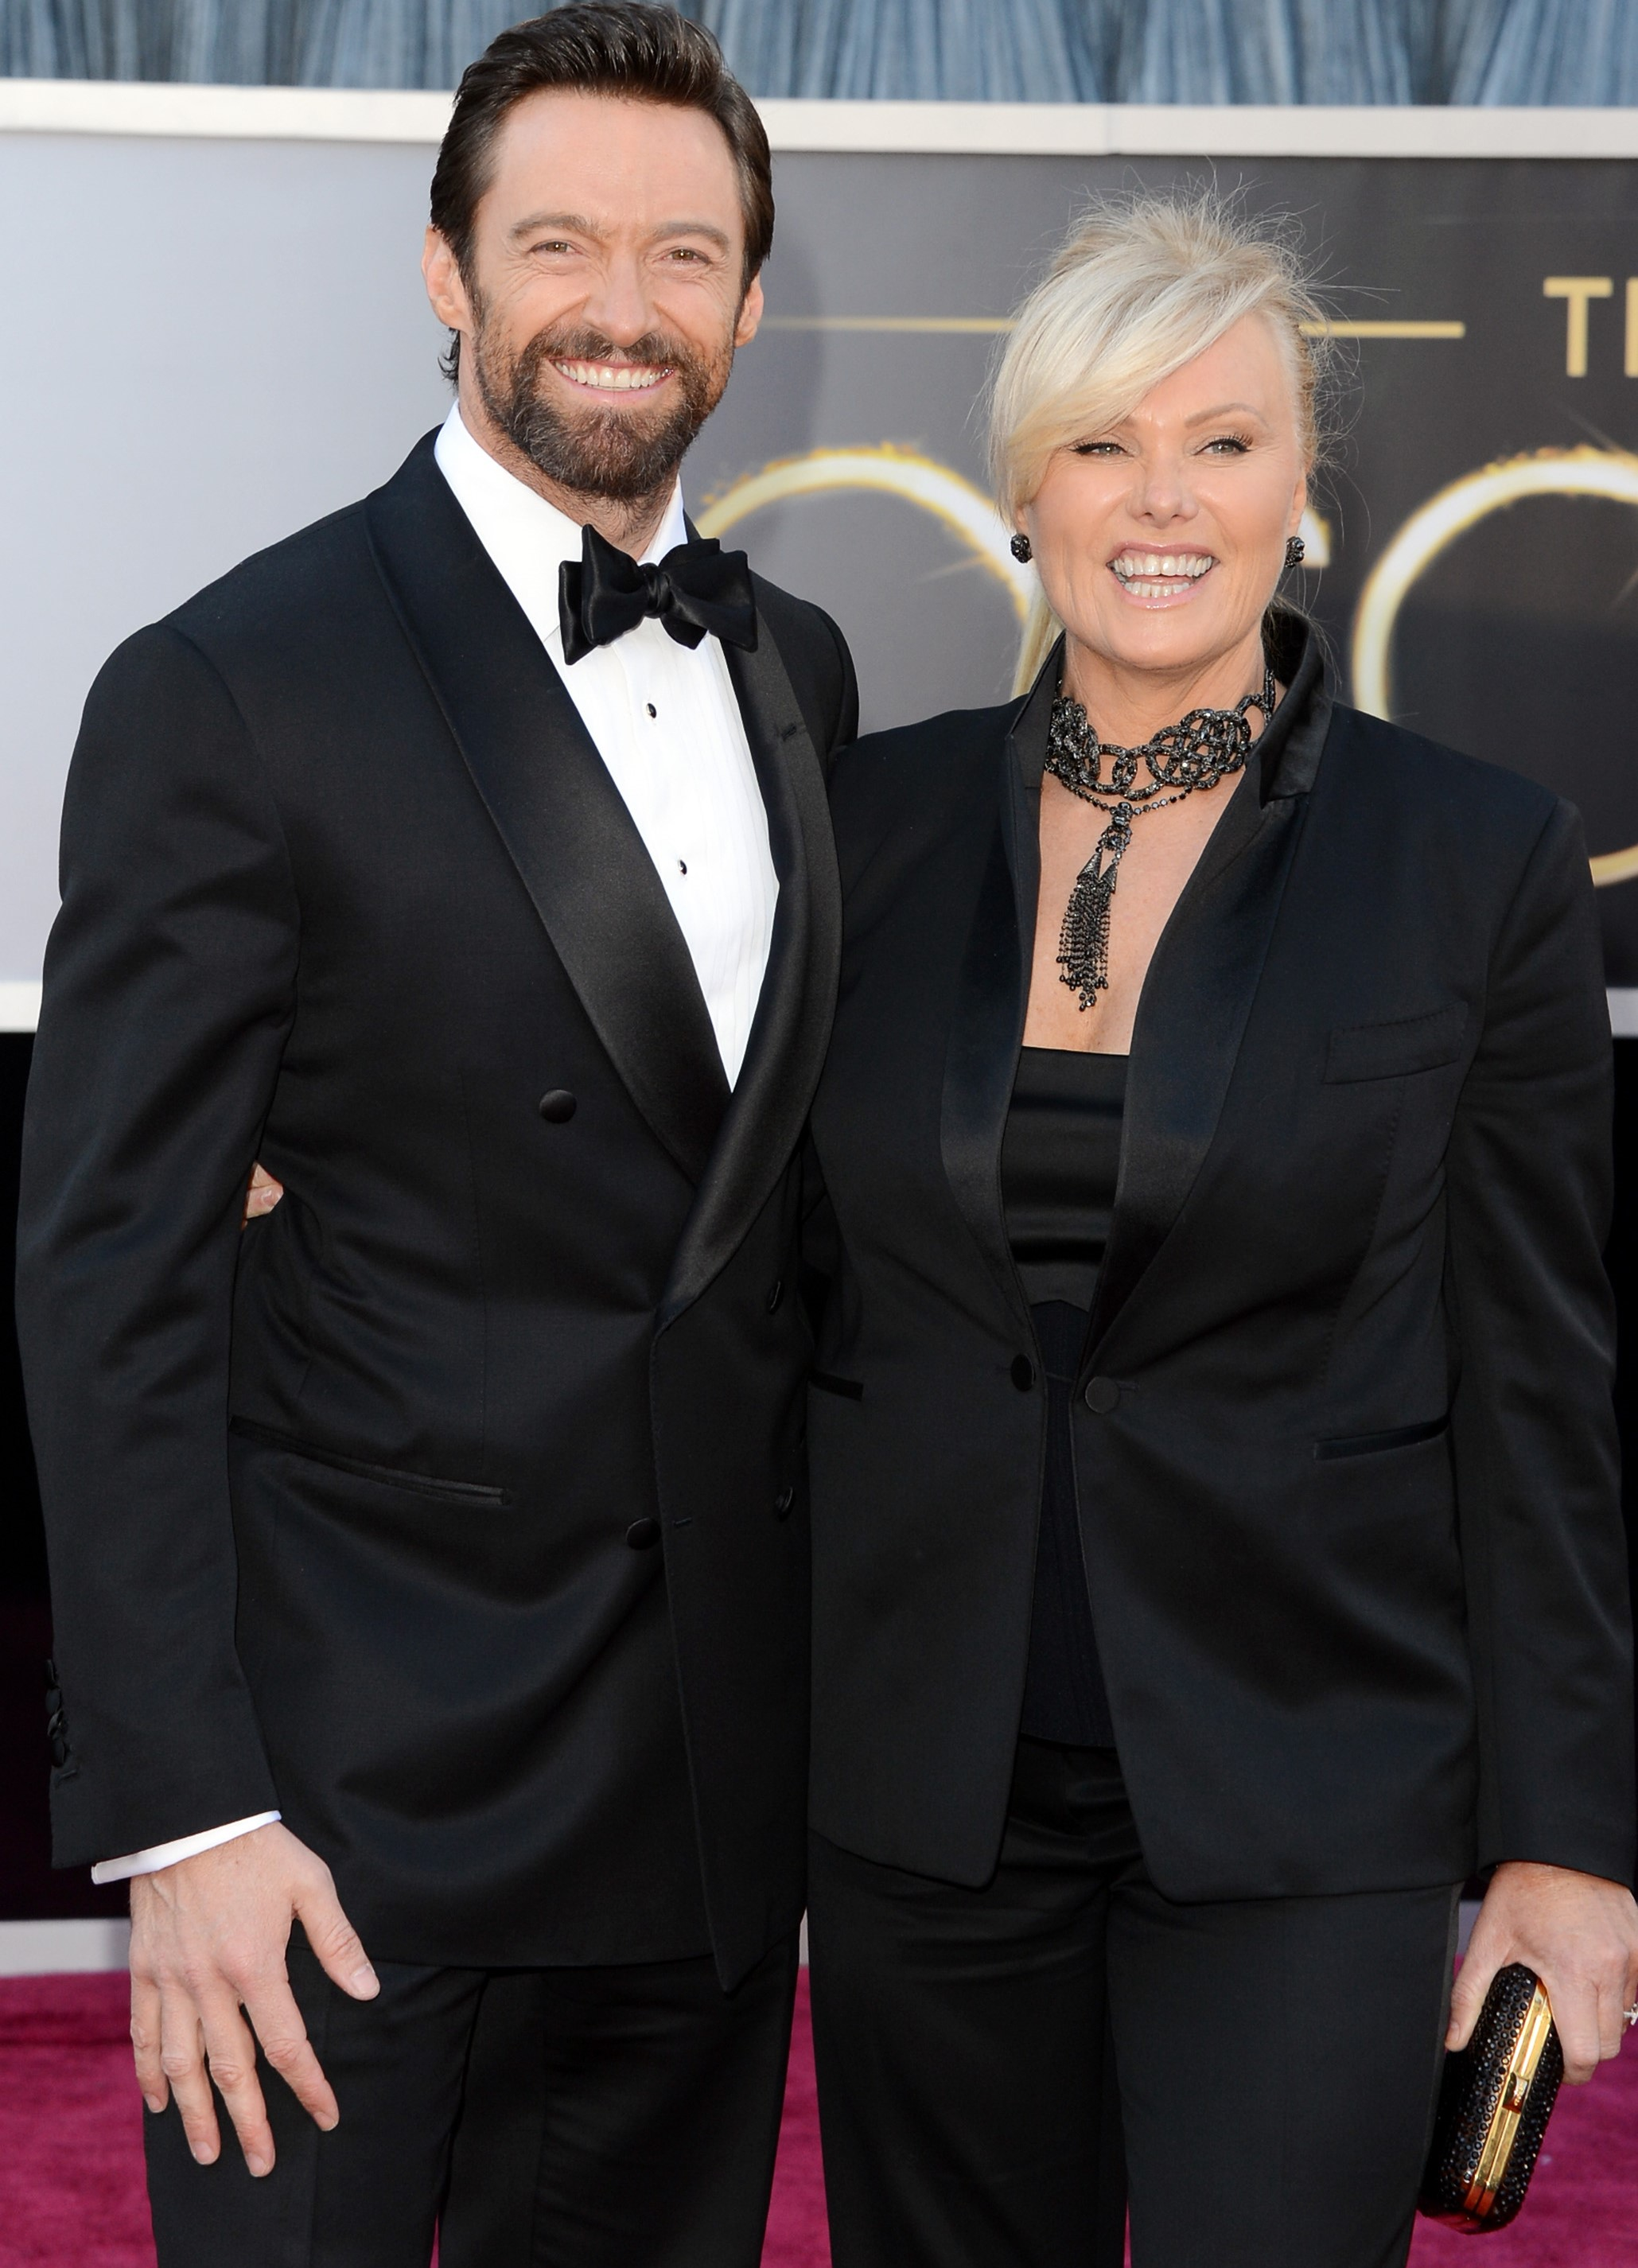 hugh-jackman-wife-picture-getting-waxed-squatting